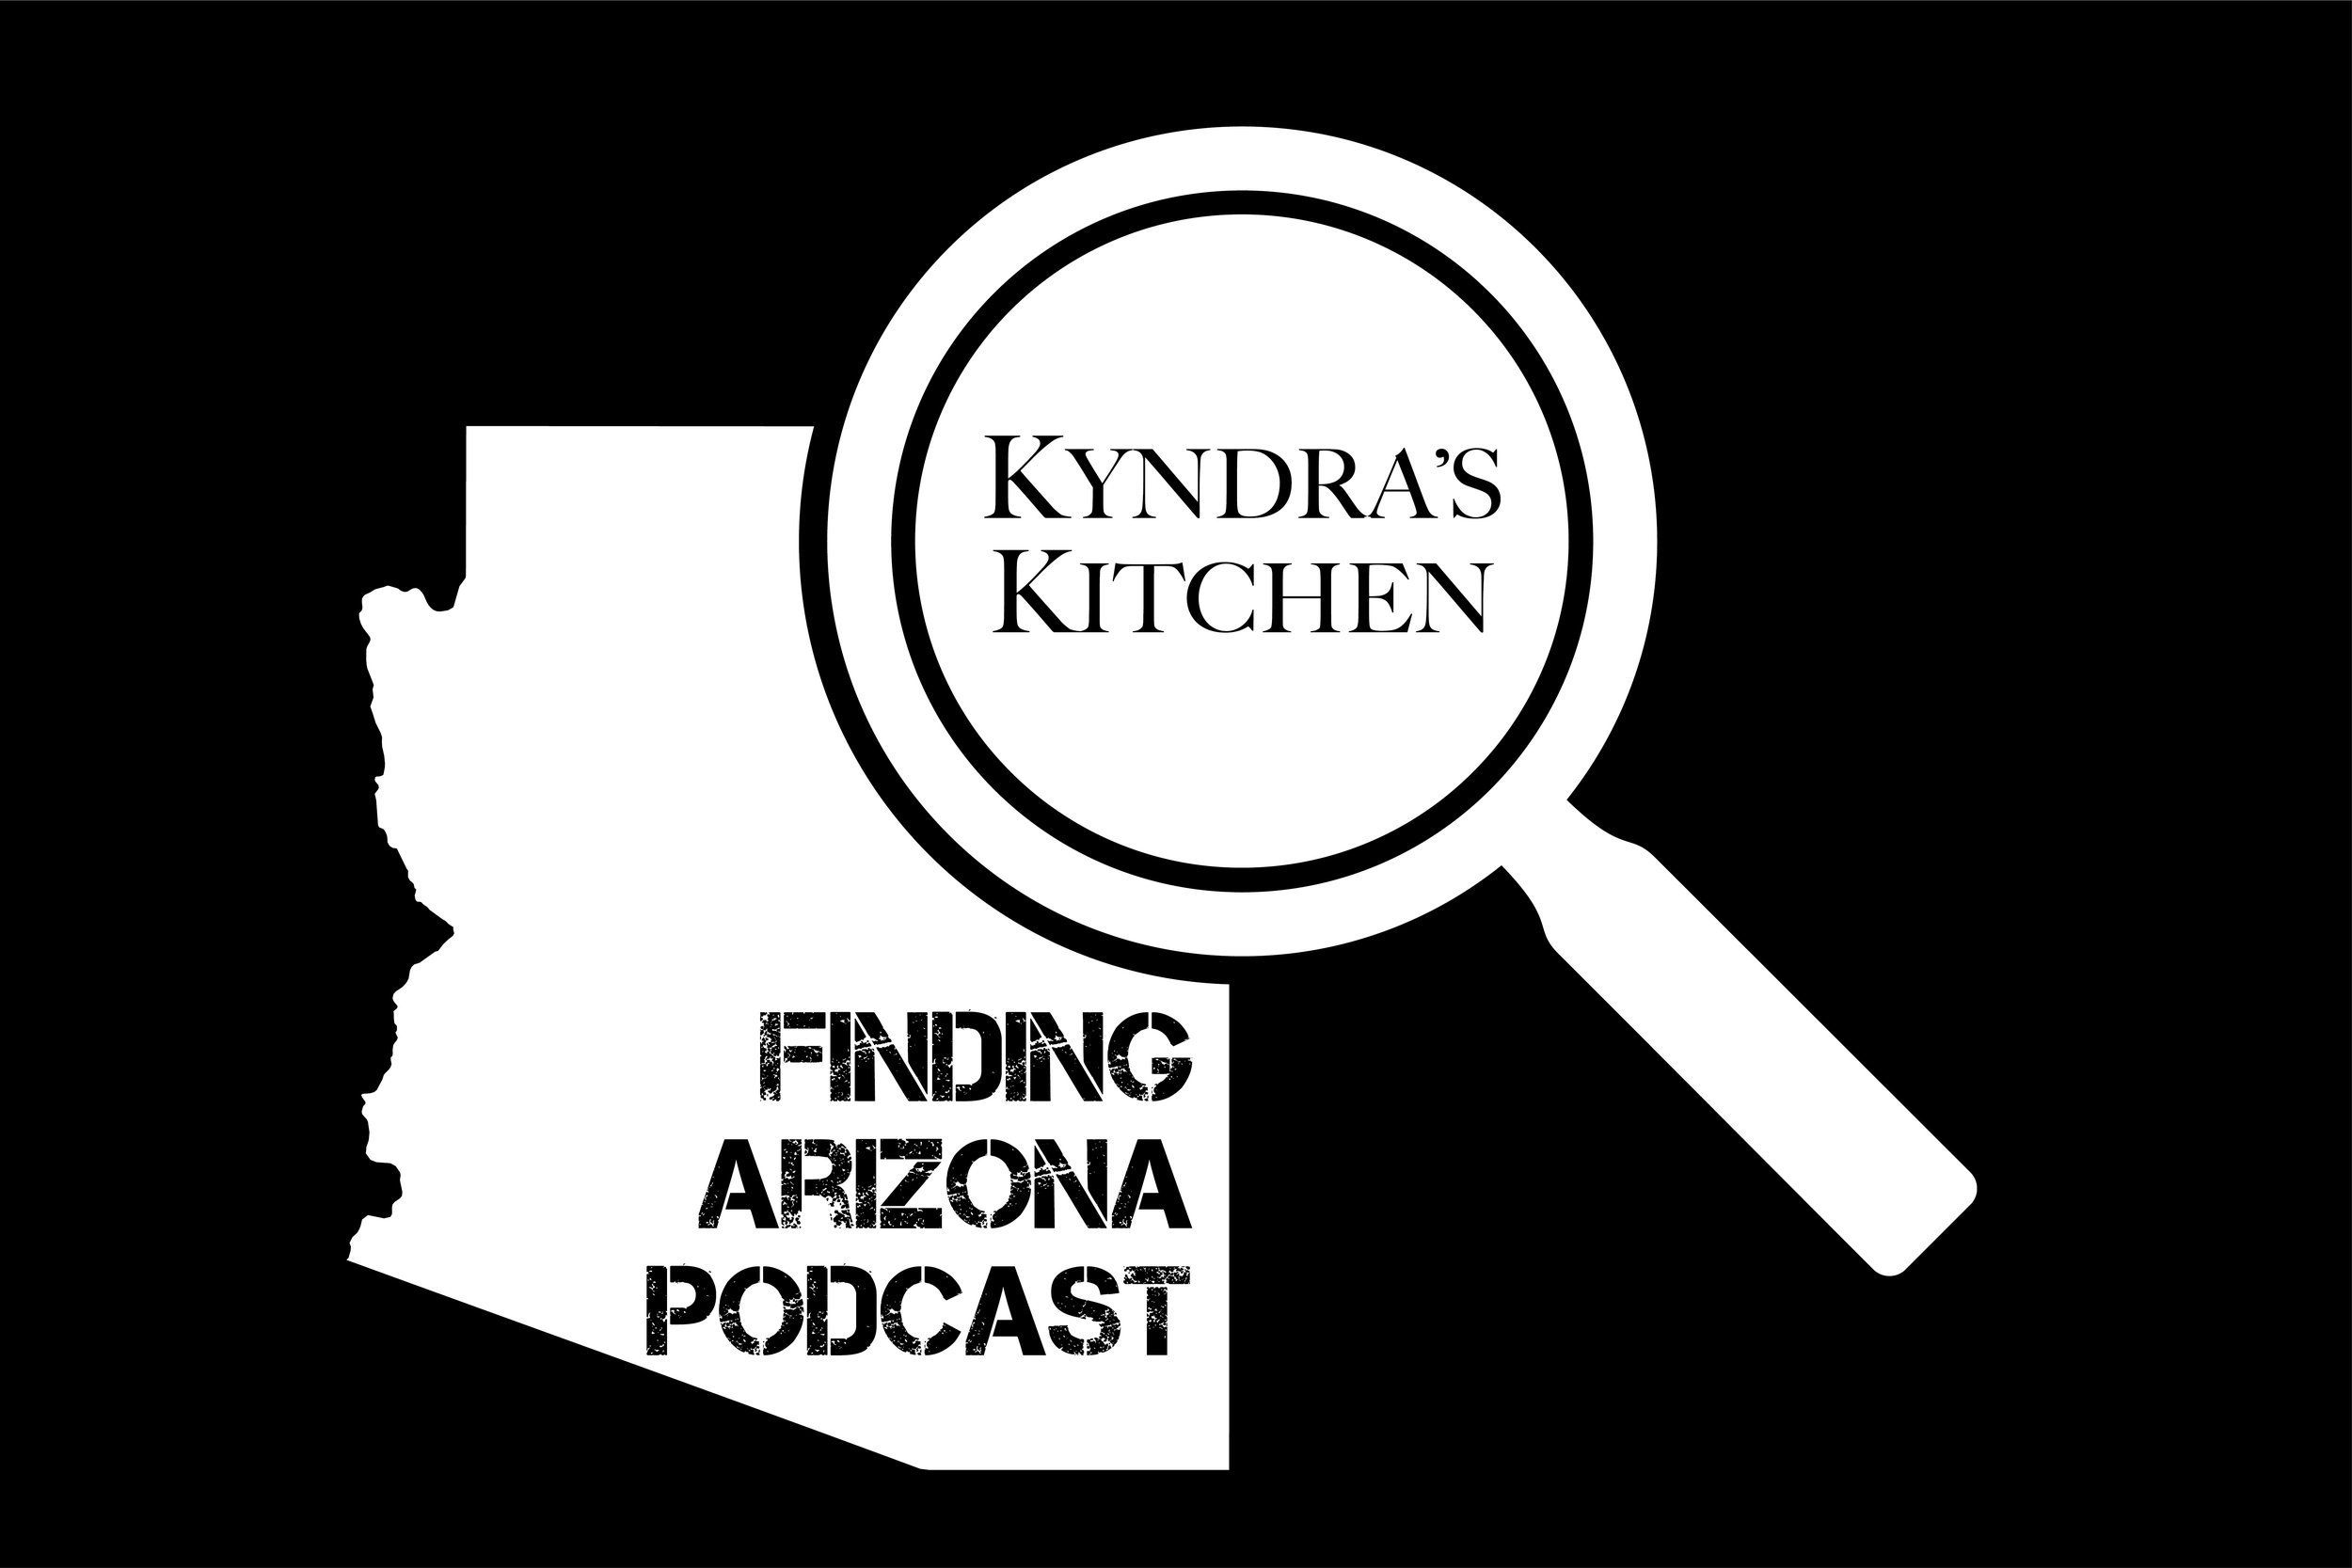 PodCastLogo-KyndrasKitchen-06.jpg